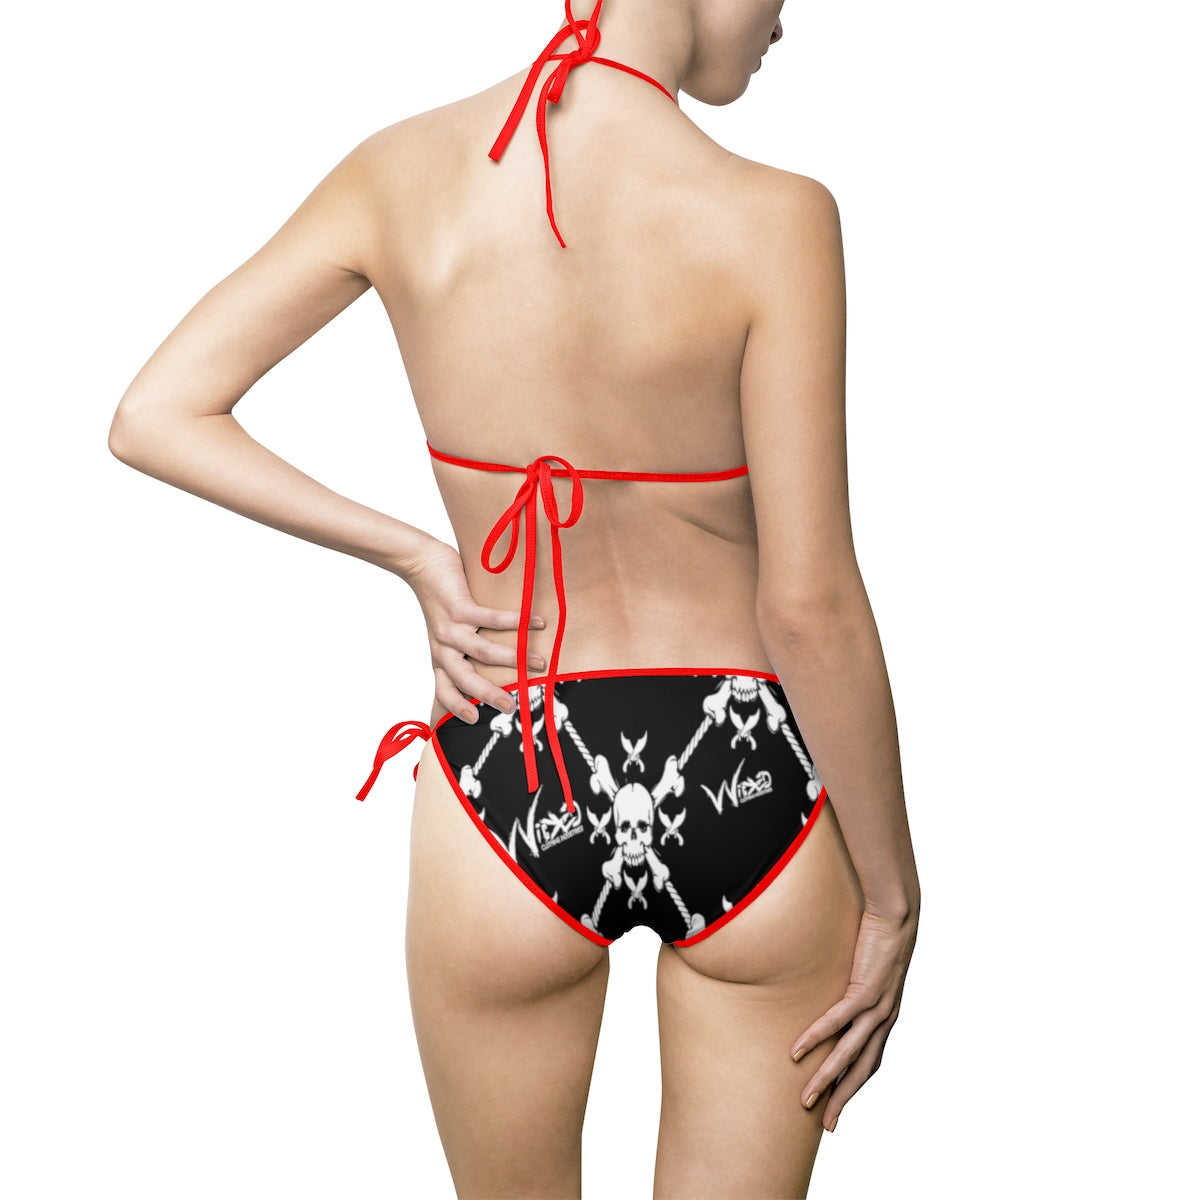 Women's Bikini Swimsuit Wicked Pirate